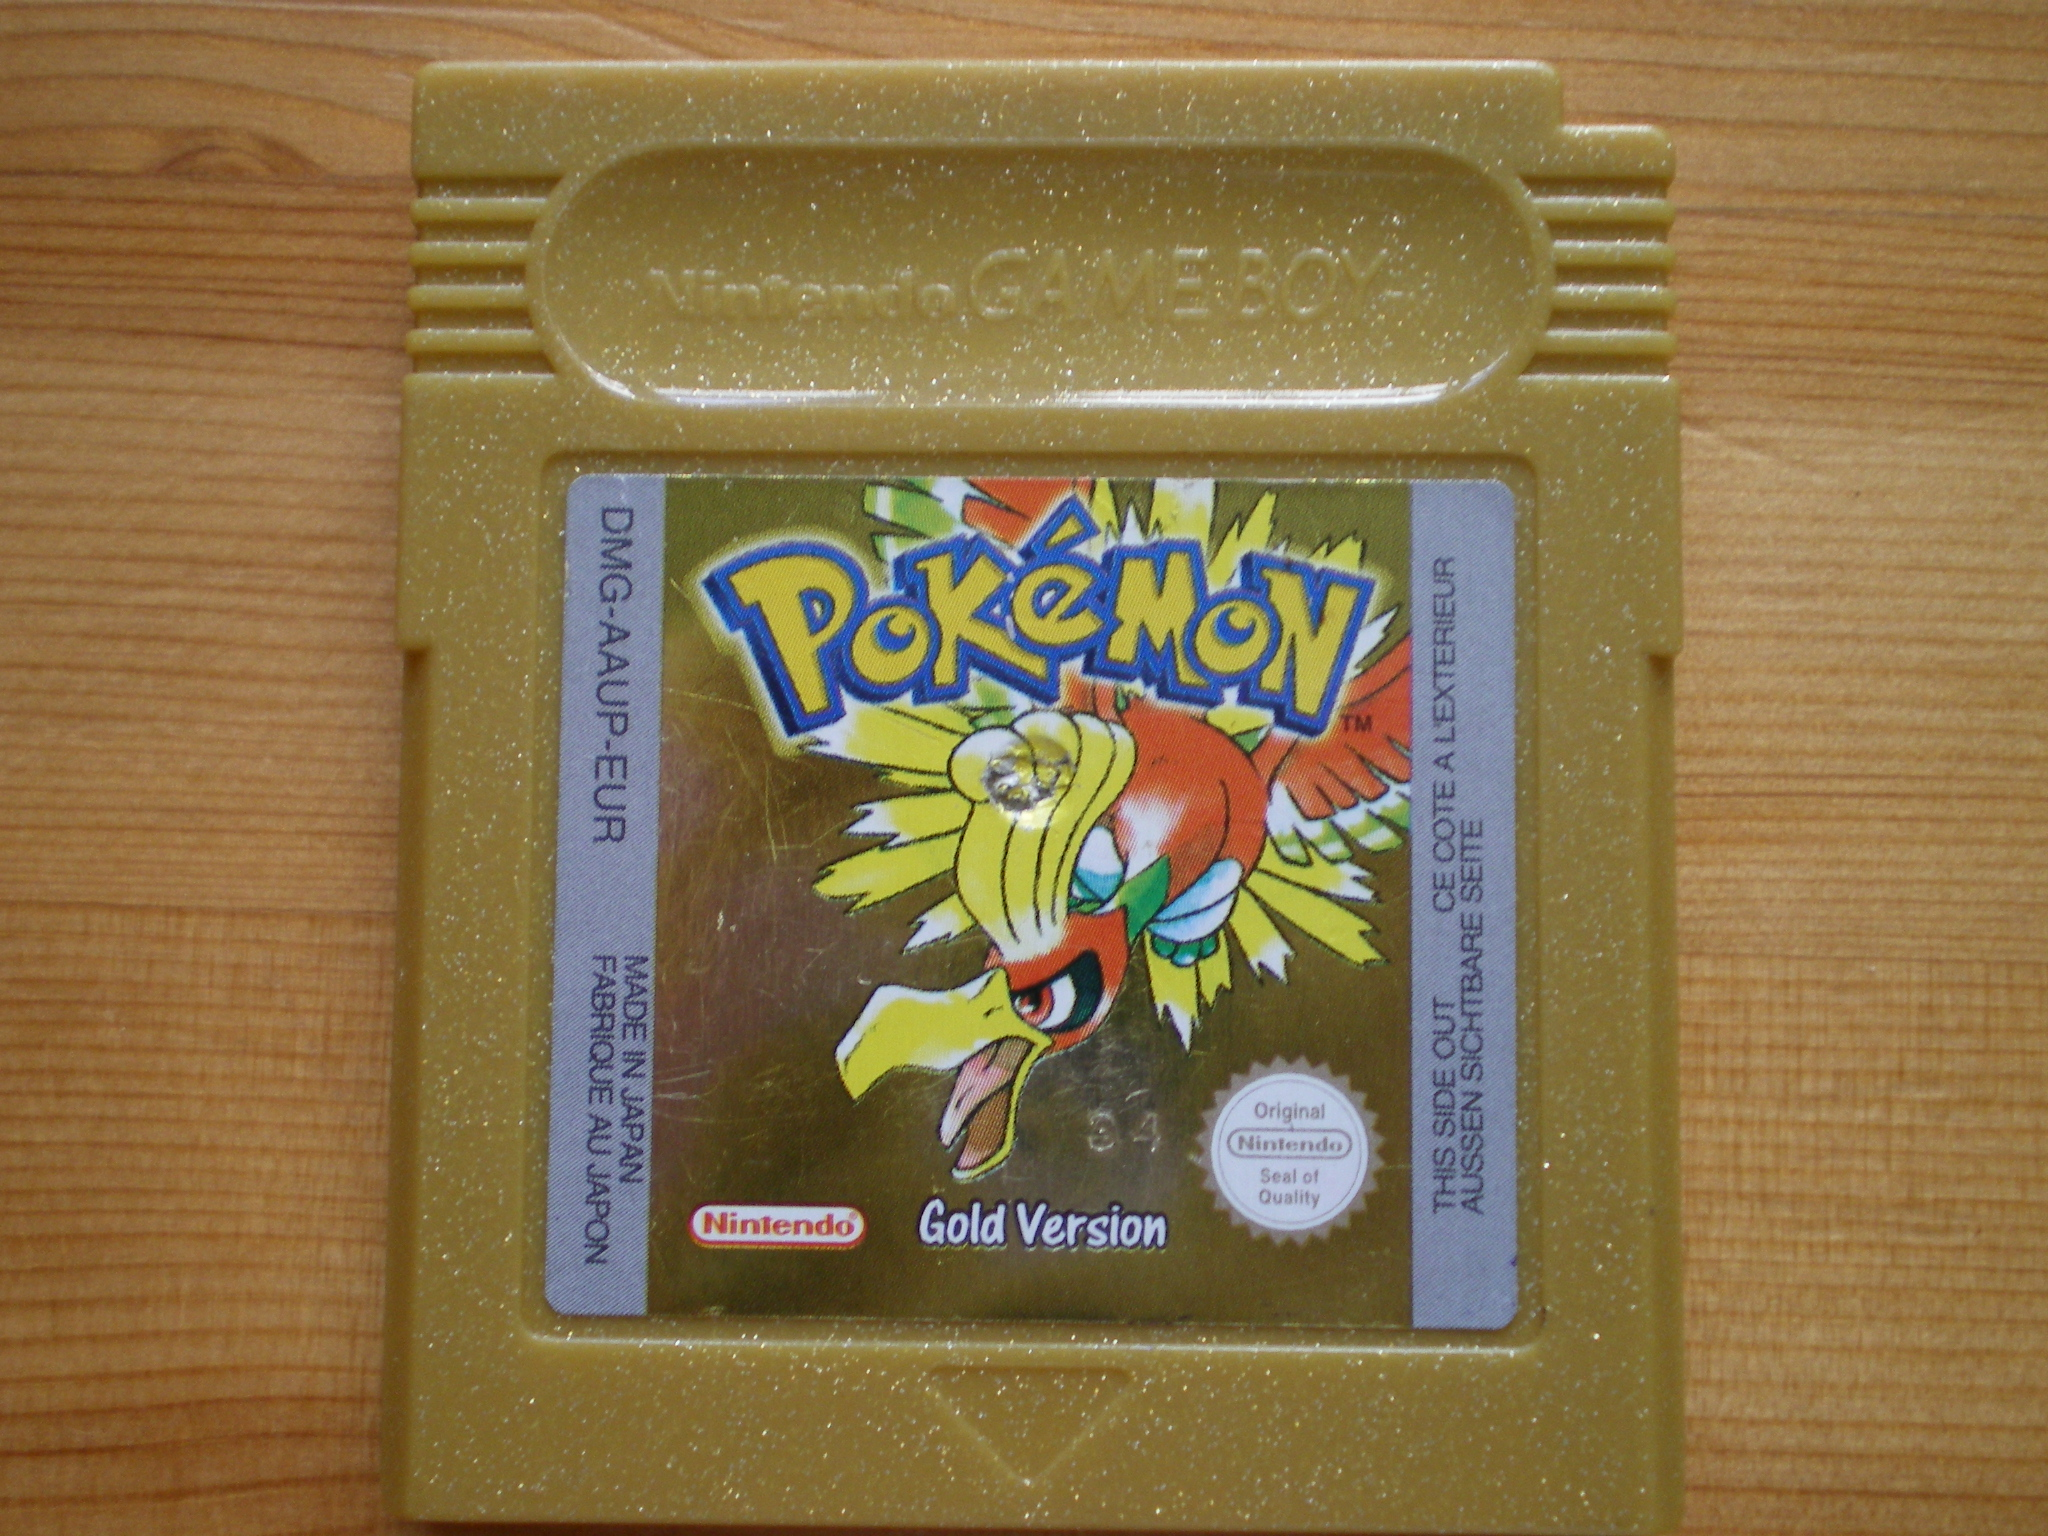 Picture of How to Replace the Battery in a Pokemon Gold/silver Gameboy Cart